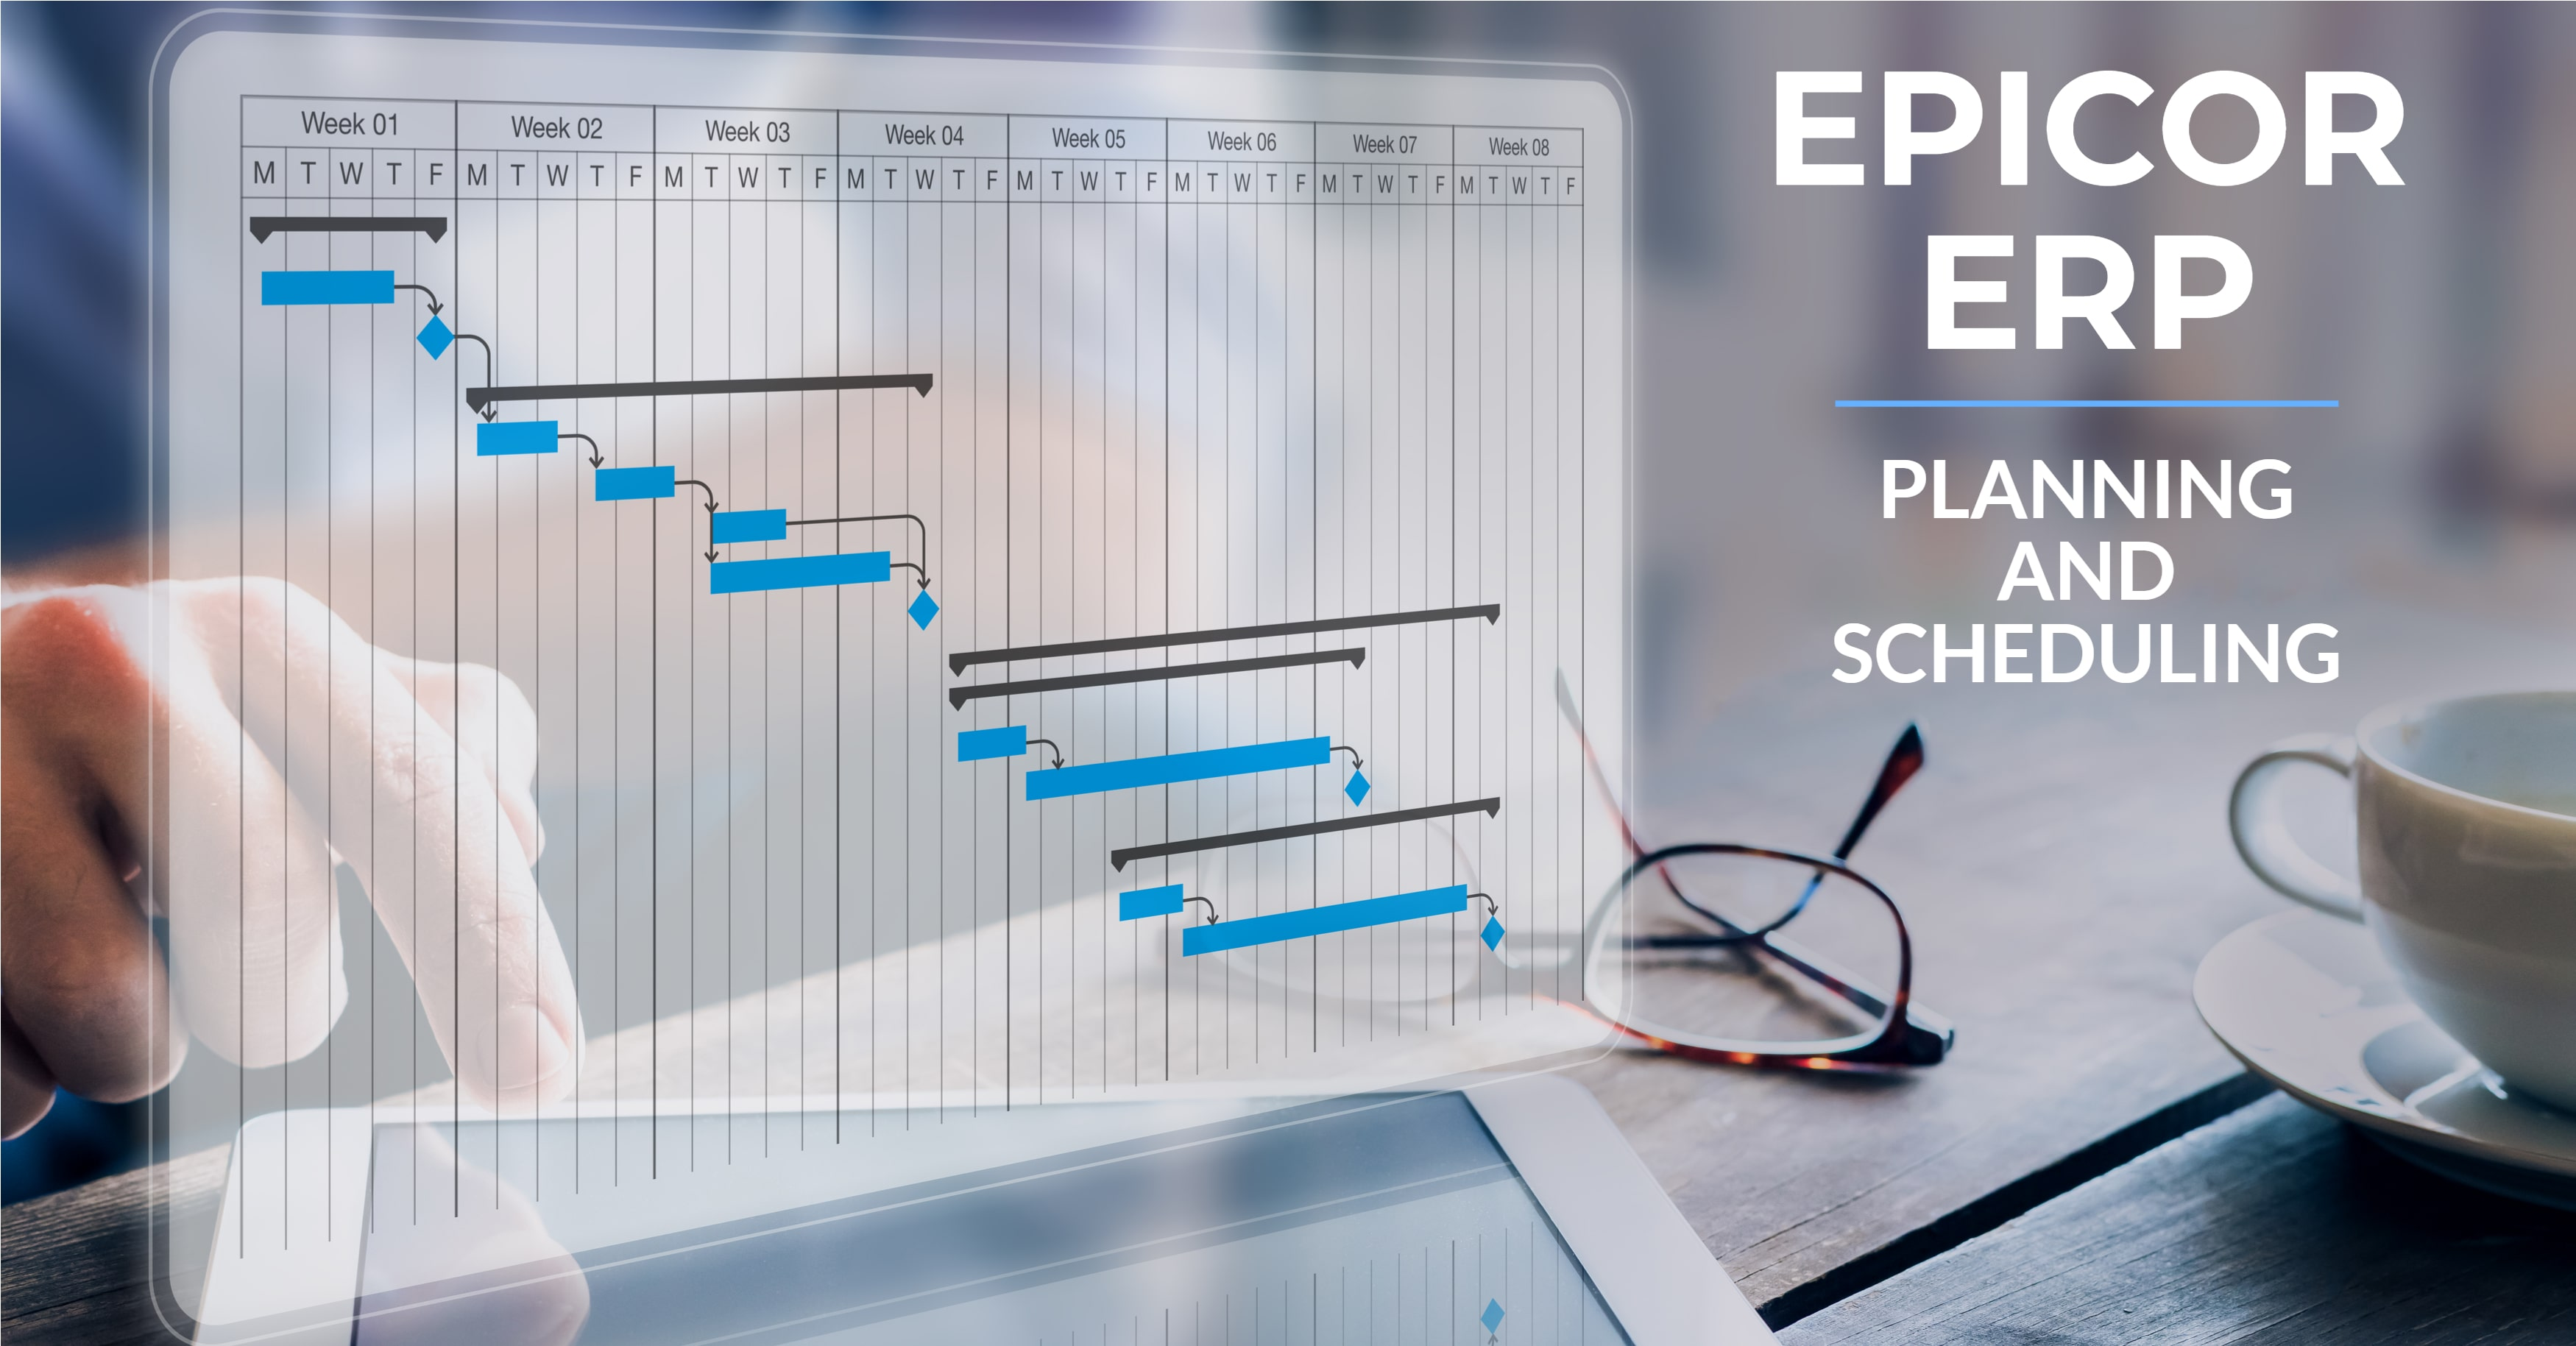 Epicor ERP for Effective Planning and Scheduling